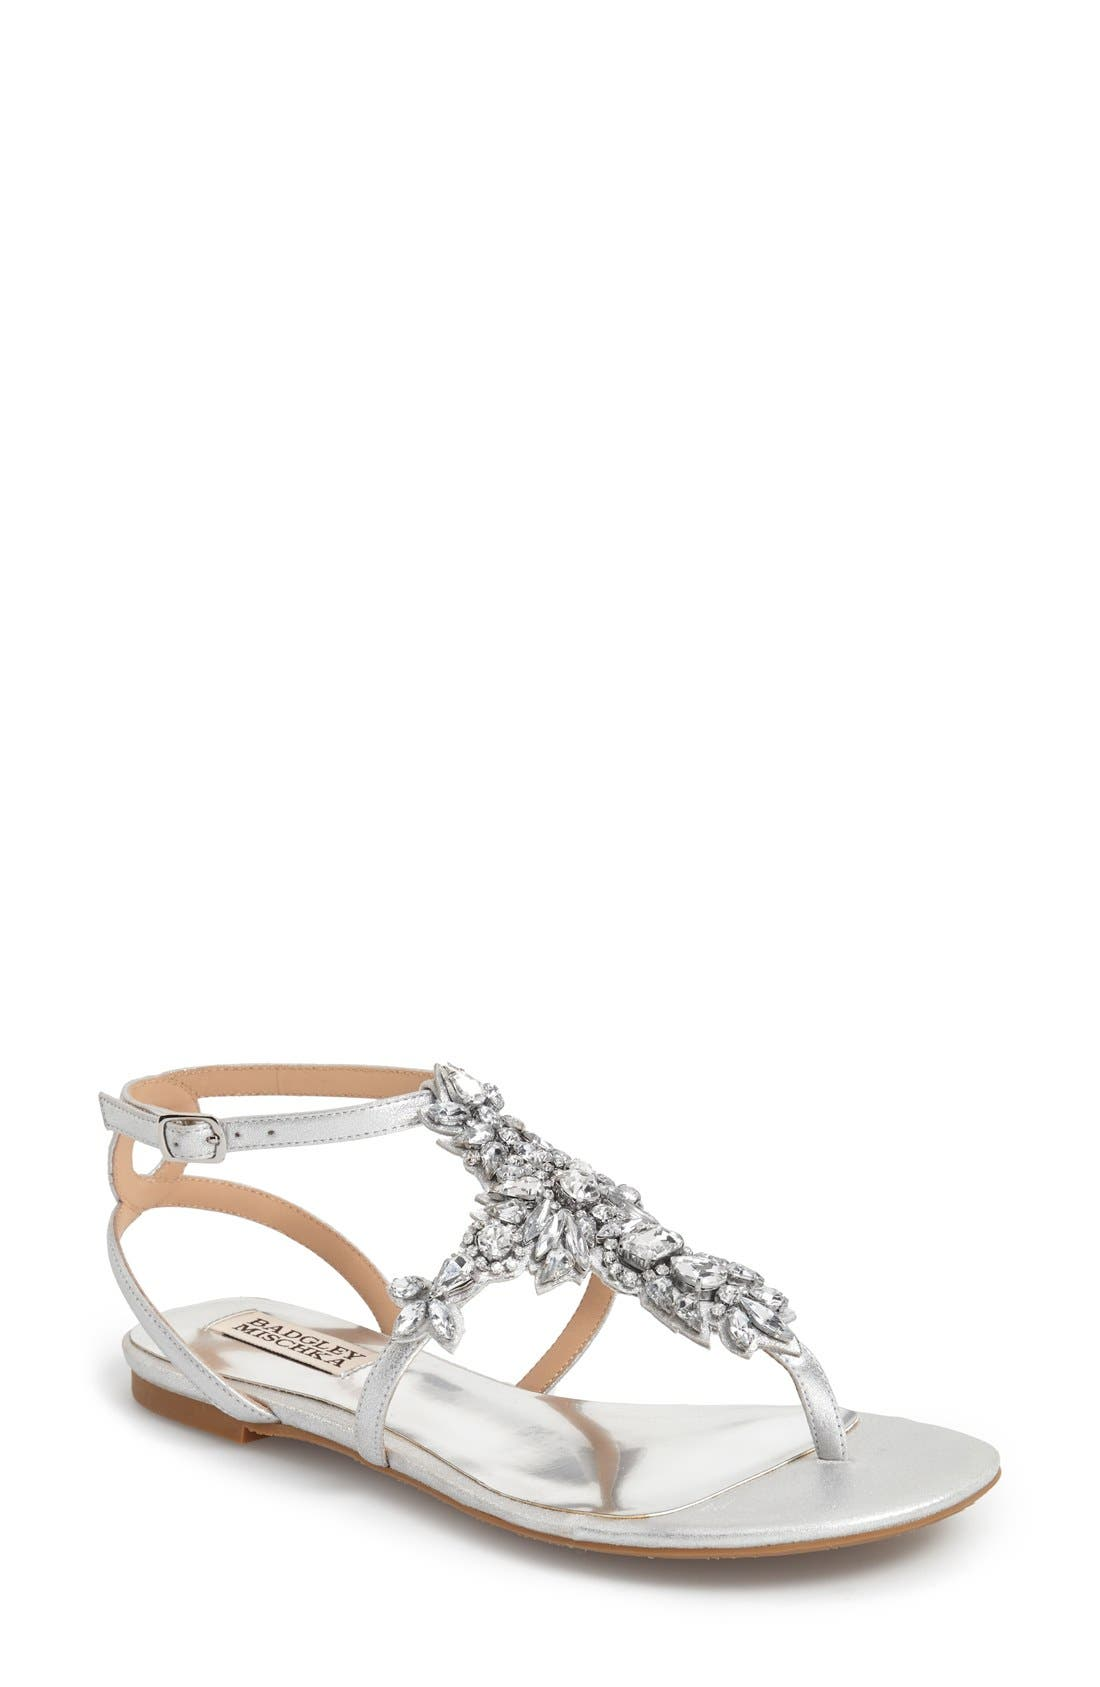 Badgley Mischka 'Cara' Crystal Embellished Flat Sandal (Women)